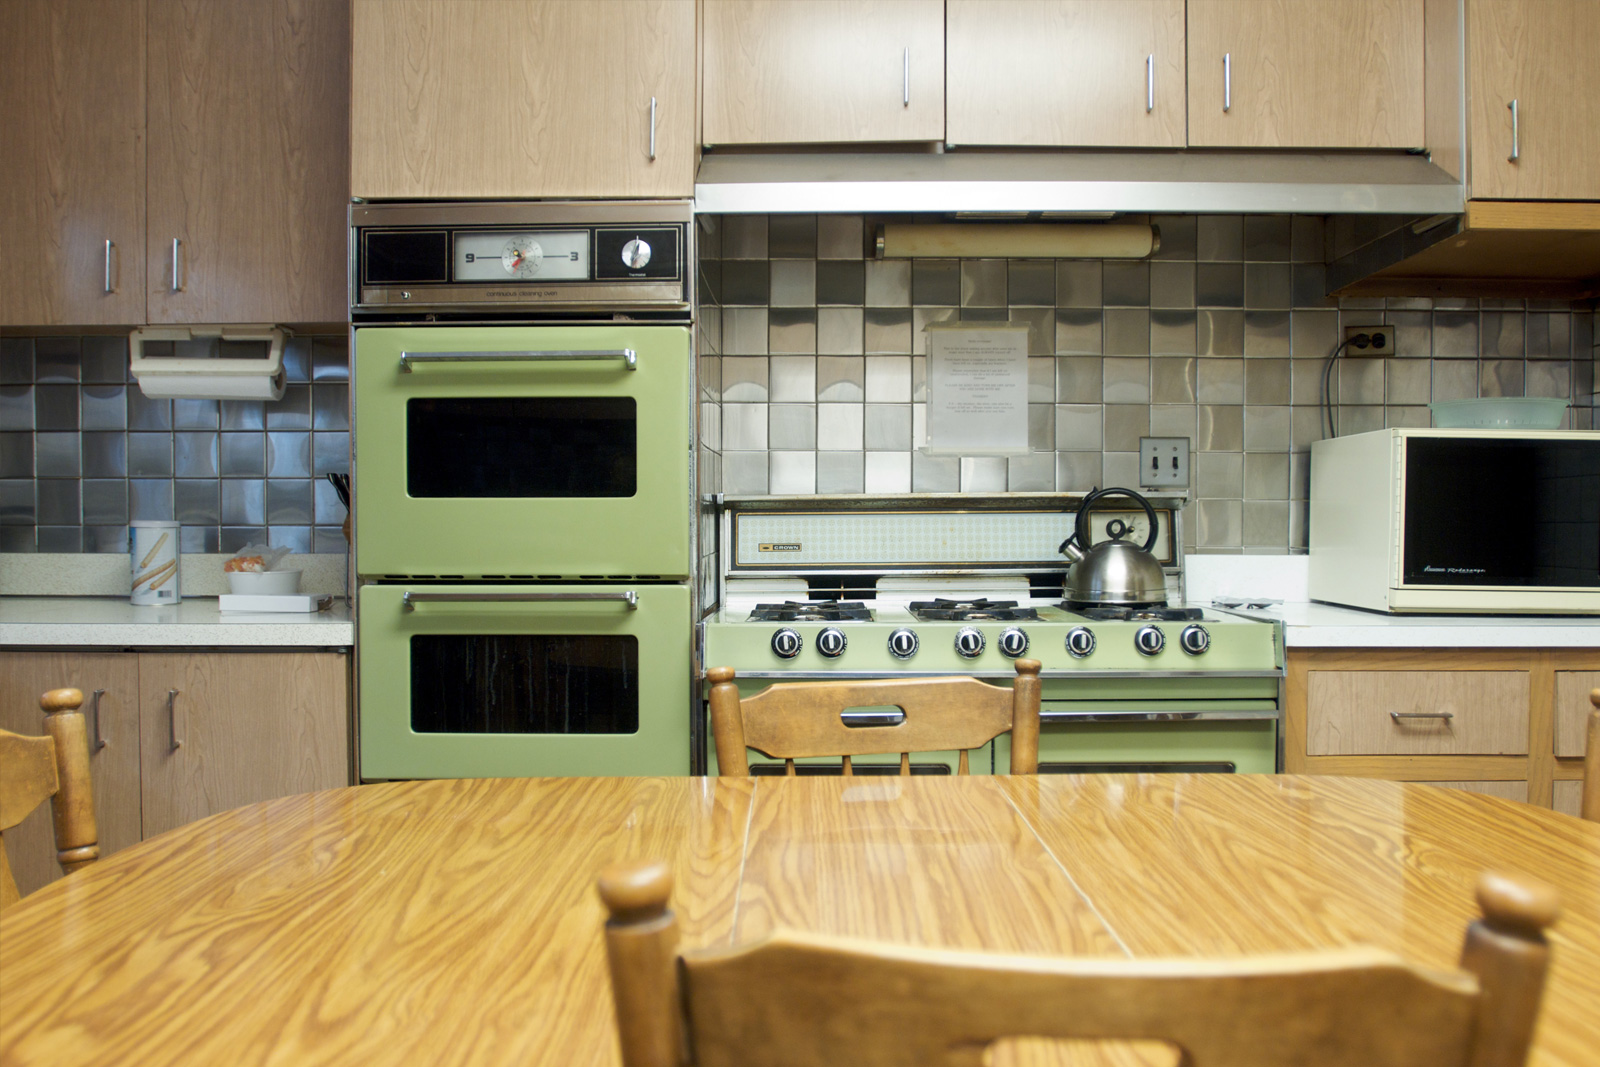 Best floors for a kitchen - Avocado Green Kitchen